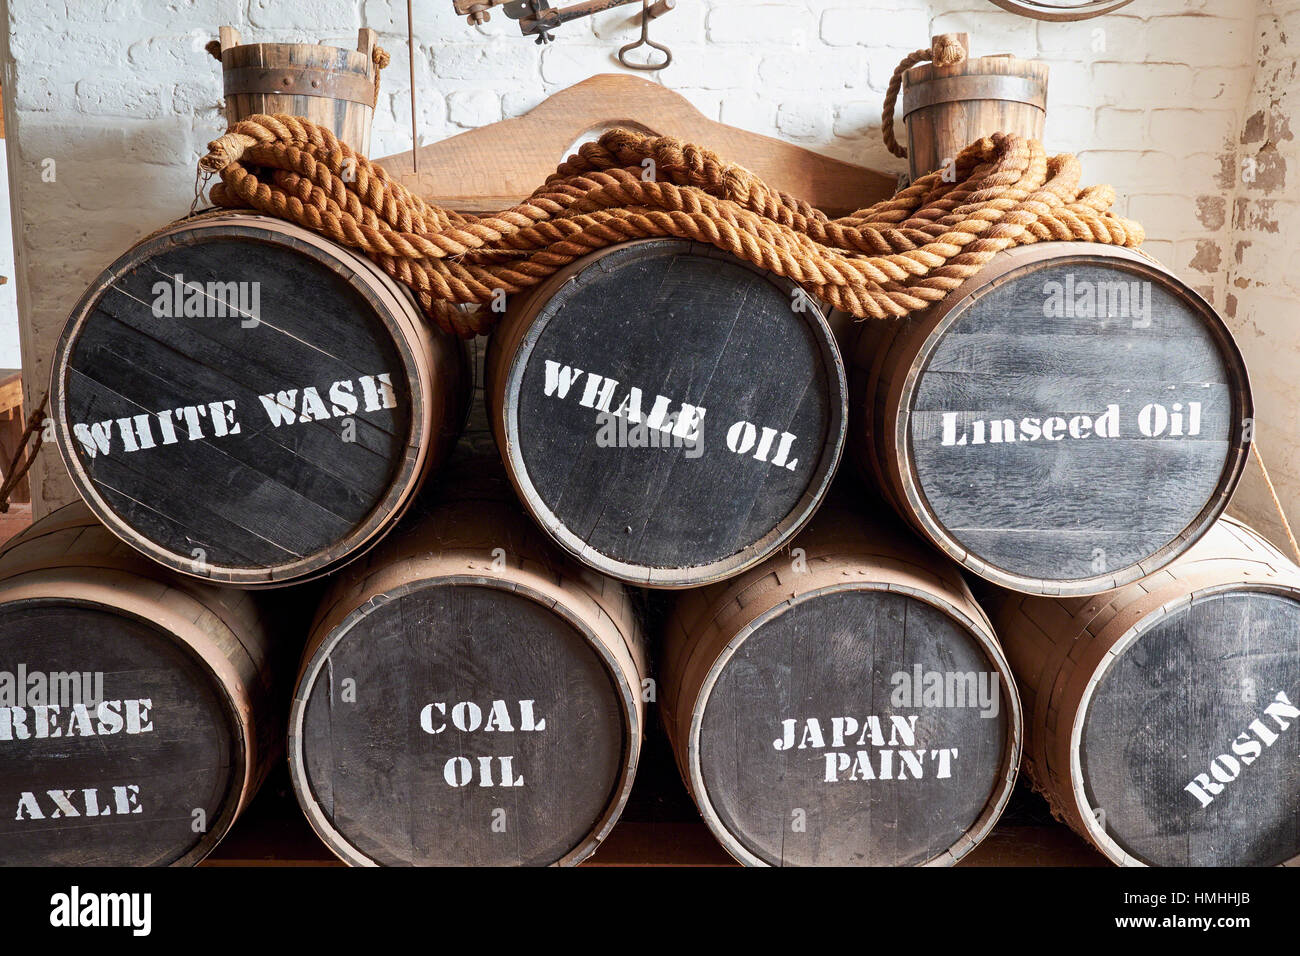 Close Up View of Civil War Era Military Supply in Wooden Barrels, Ft. Clinch, Florida - Stock Image